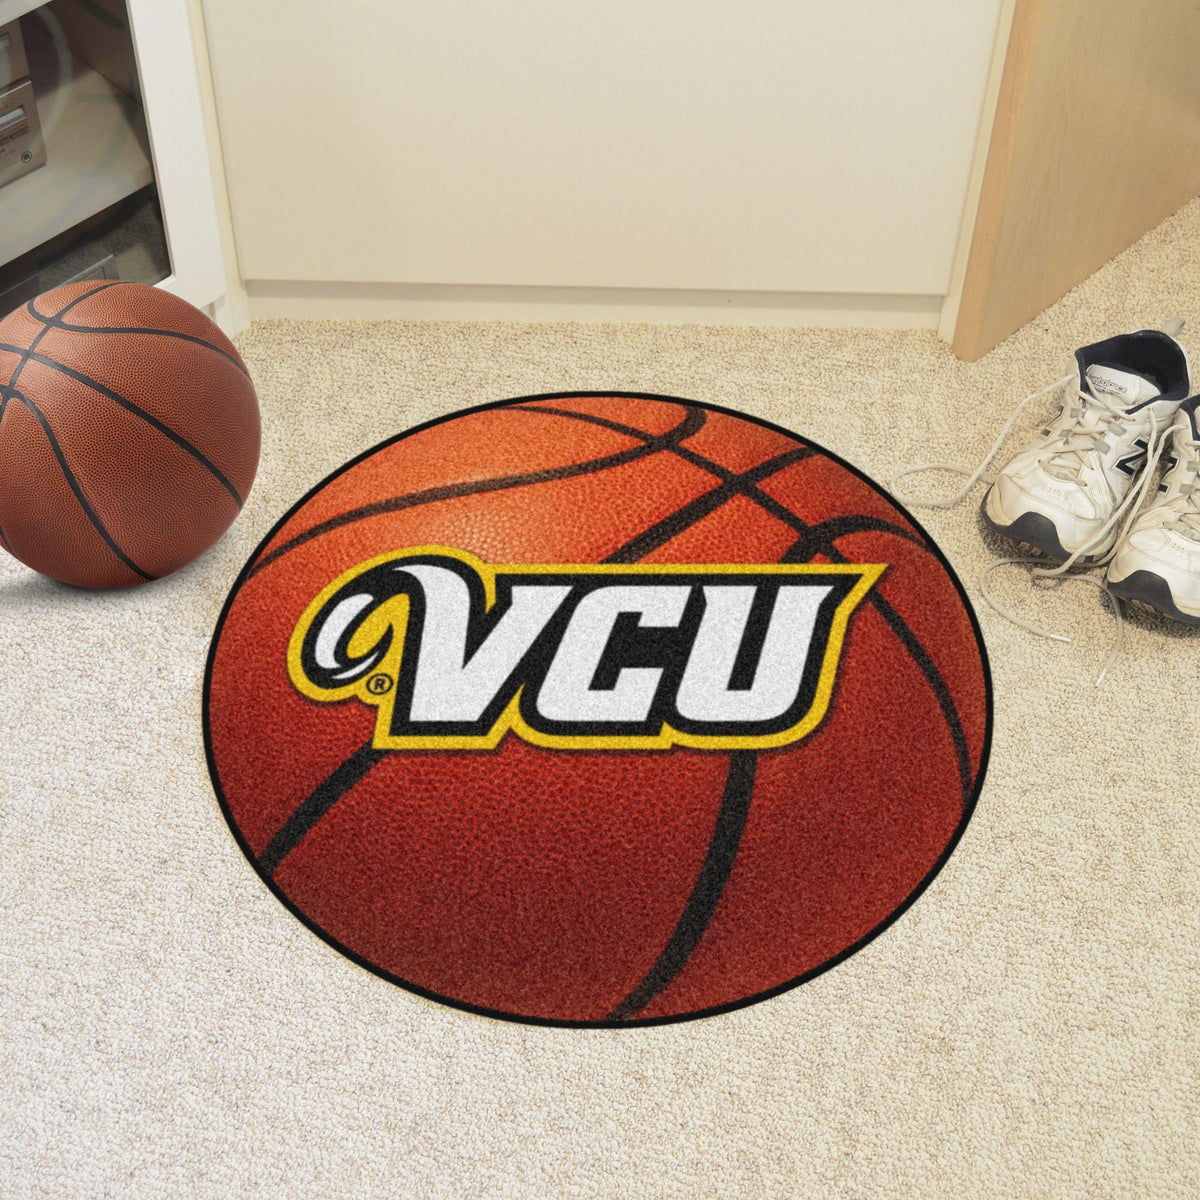 Collegiate - Basketball Mat: T - Z Collegiate Mats, Rectangular Mats, Basketball Mat, Collegiate, Home Fan Mats VCU